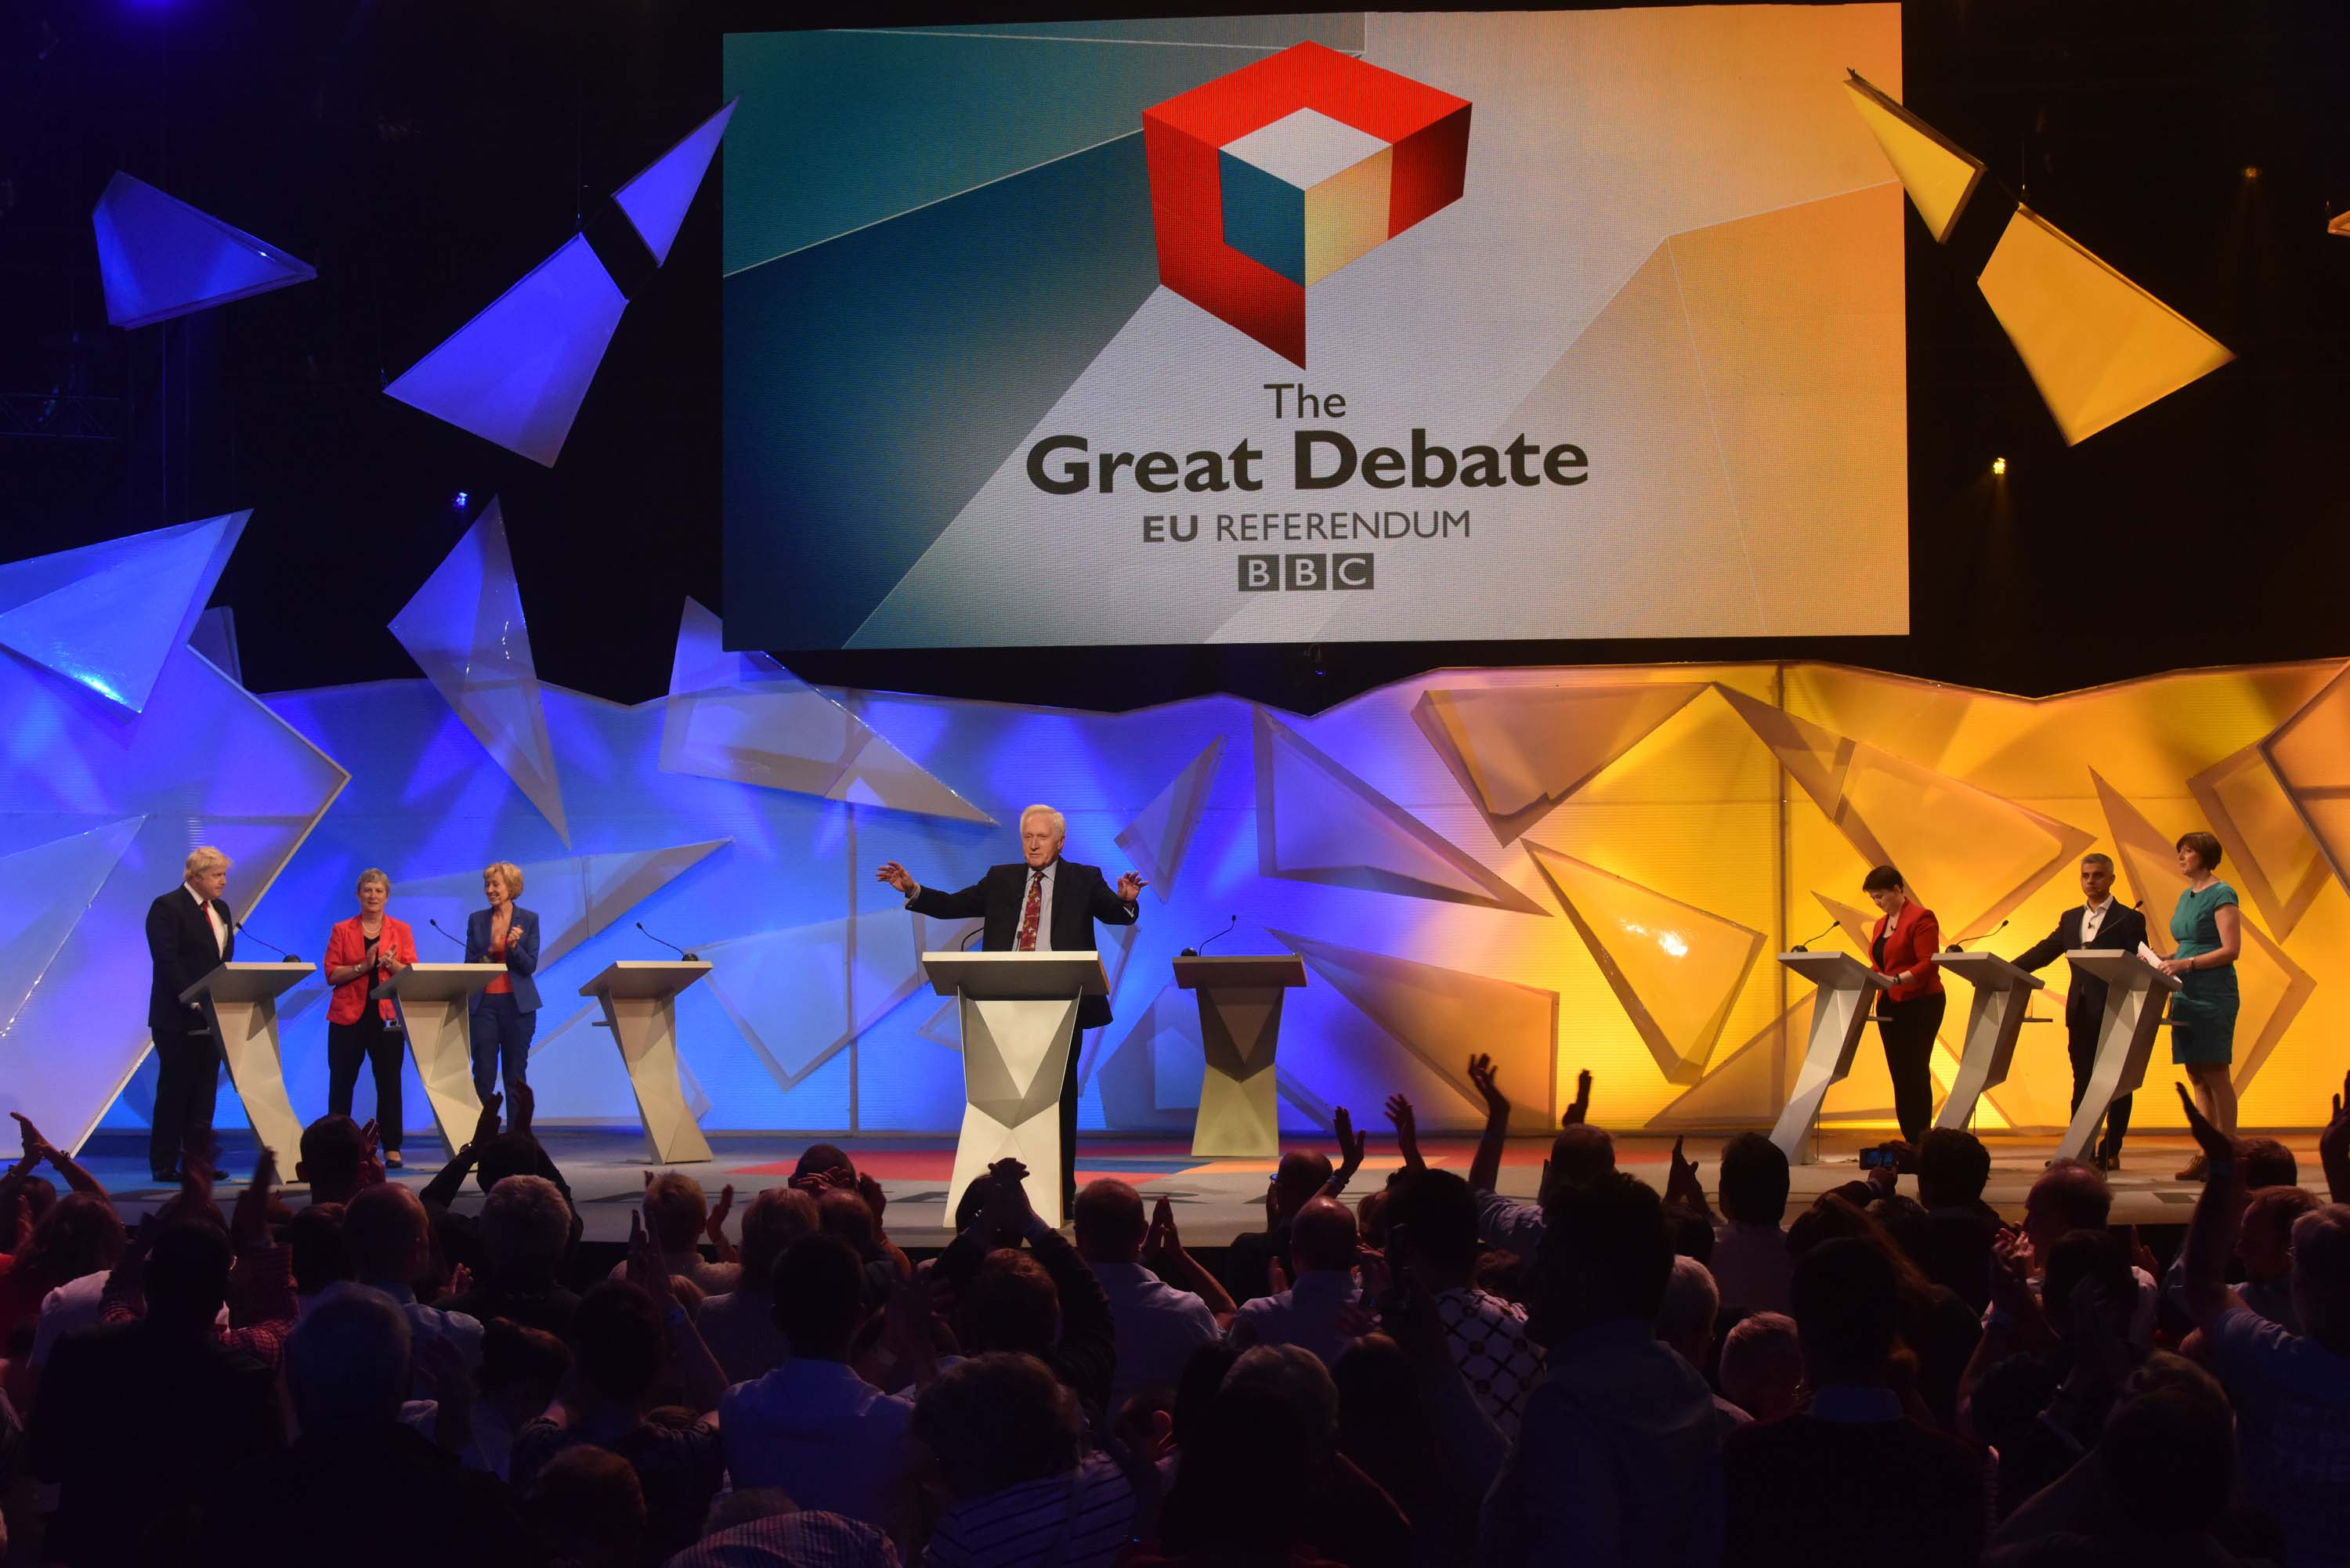 In this handout image provided by the BBC, Boris Johnson, Gisela Stuart, Energy Minister Andrea Leadsom, David Dimbleby (C), Scottish Conservative leader Ruth Davidson, Mayor of London Sadiq Khan and TUC General Secretary Frances O'Grady take part in the EU debate at Wembley Arena on June 21, 2016 in London, England.